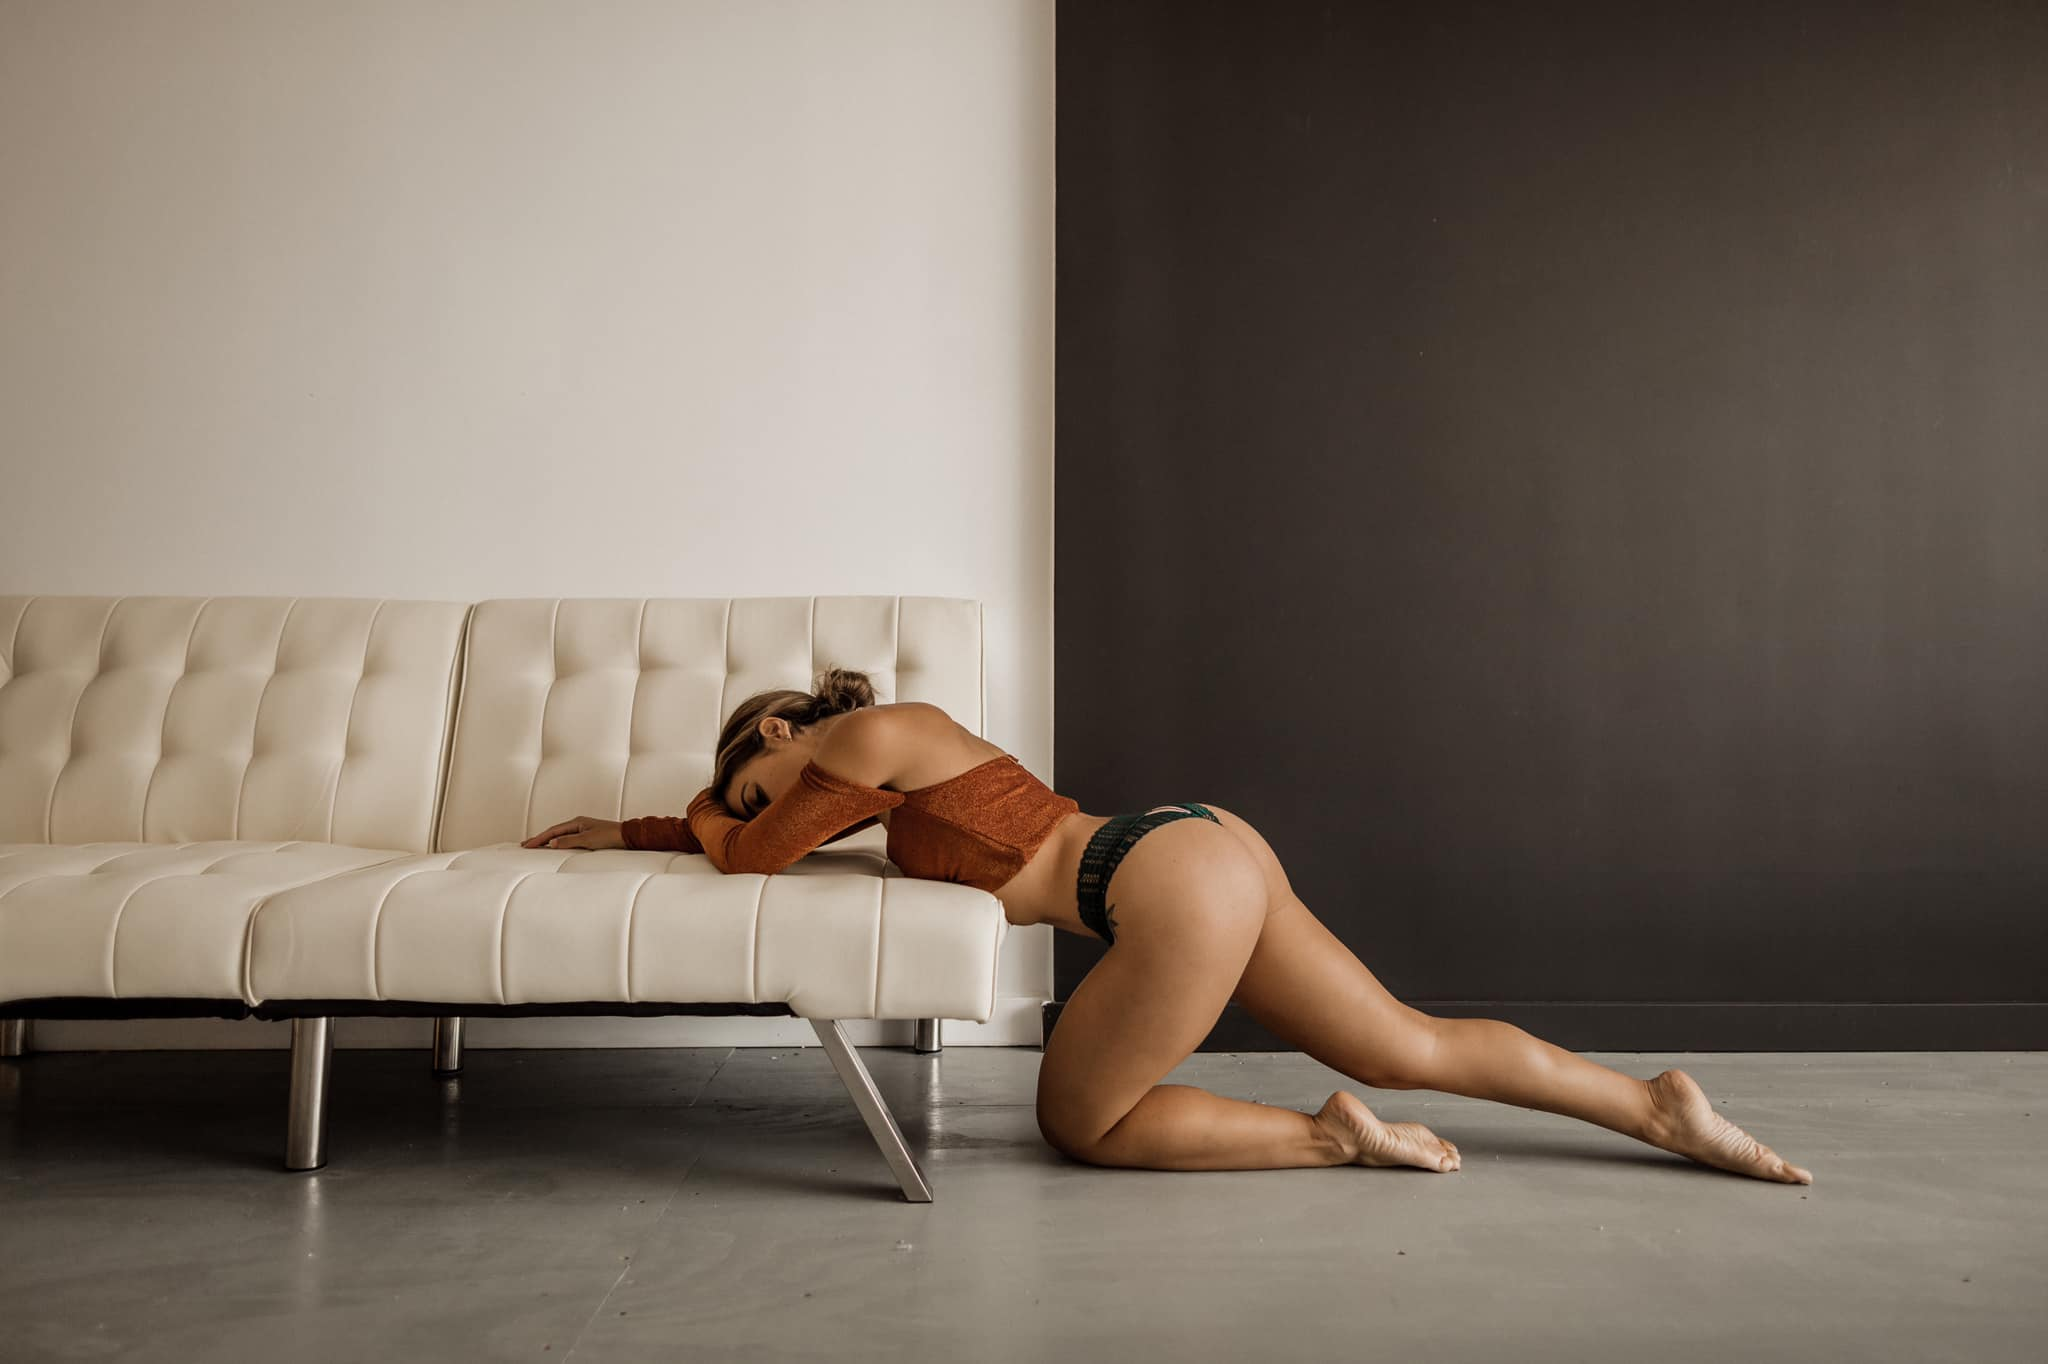 The Best Boudoir Images From Our Community In 2020